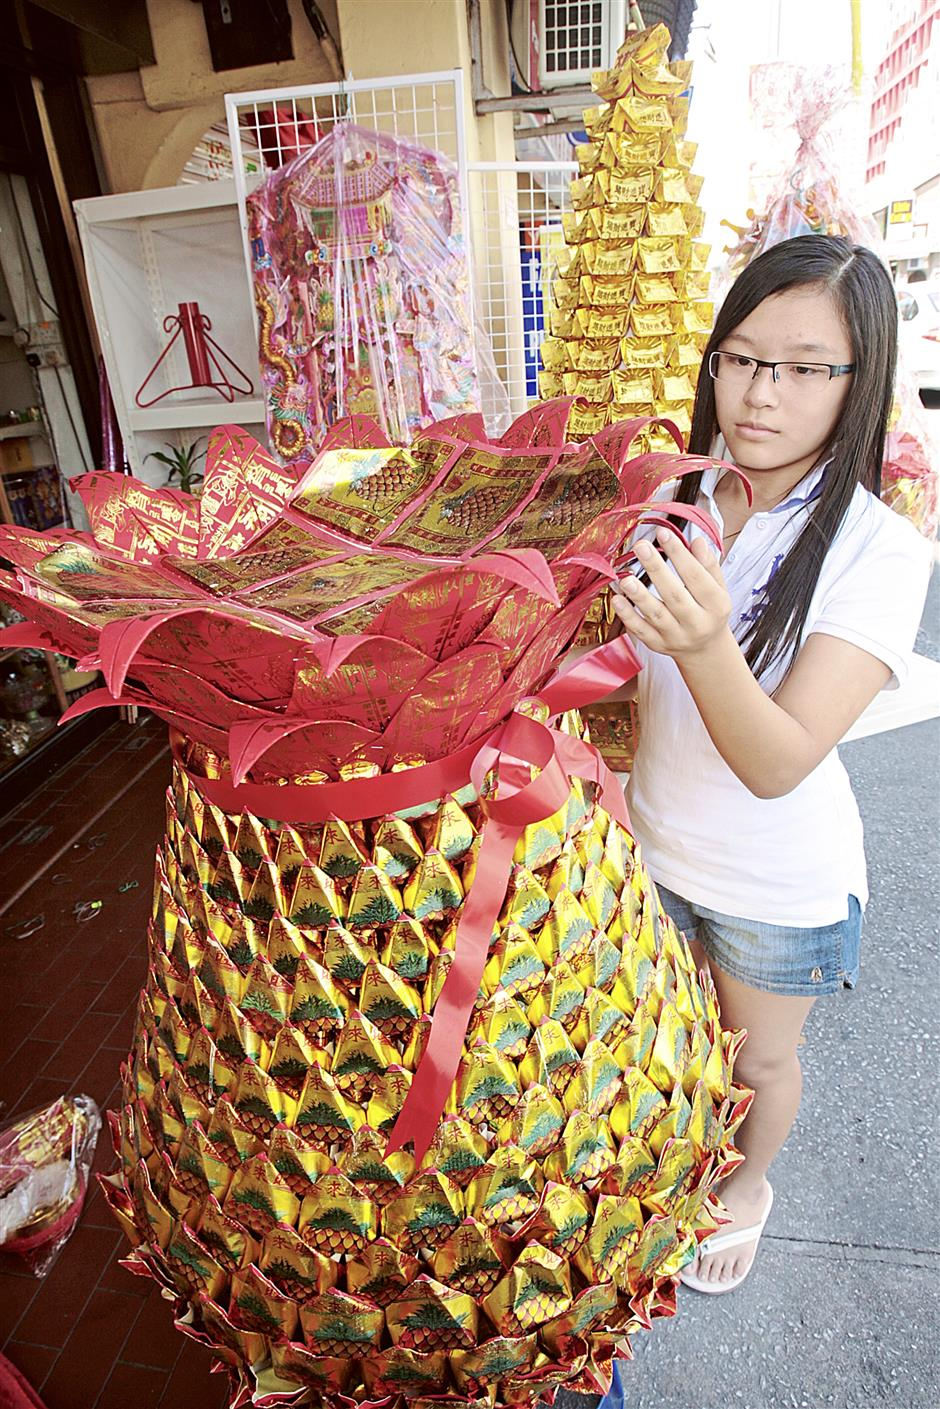 Student Jocelyn Teh, the daughter of prayer paraphernalia trader G.H.Teh, showing a pineapple-shape 'Thnee Kong Poh